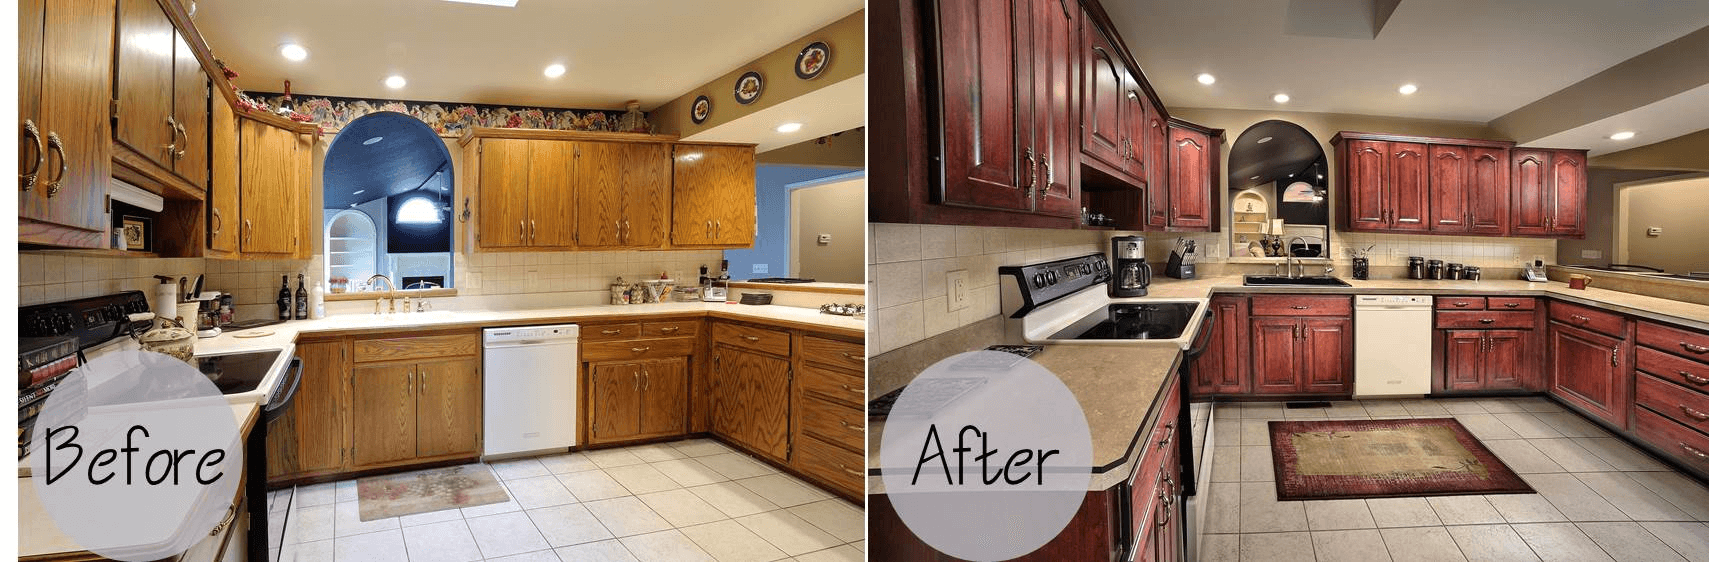 Cabinet Replacing Or Refacing Which Is A Cheaper Option For You Rainman Service